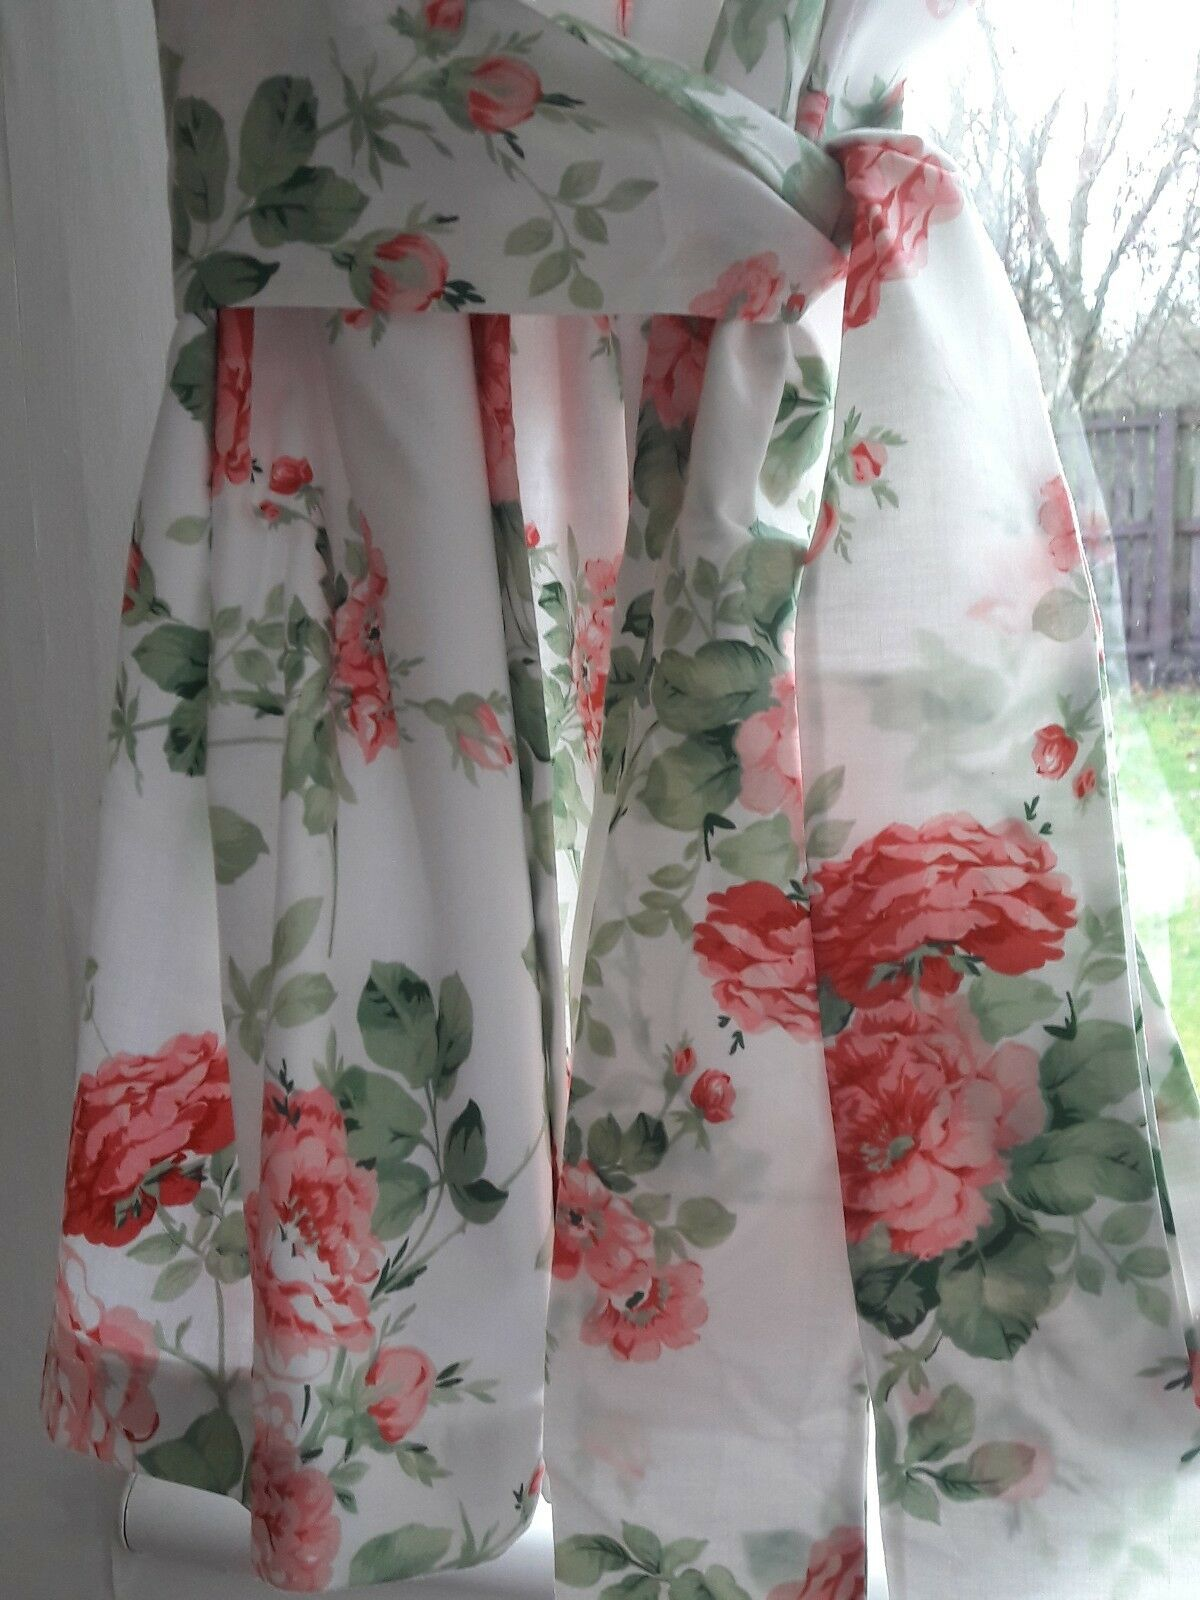 Beautiful Antique Rosa Vintage Style Bespoke Bespoke Bespoke Lined Curtains 54 inch drop 9aa16a